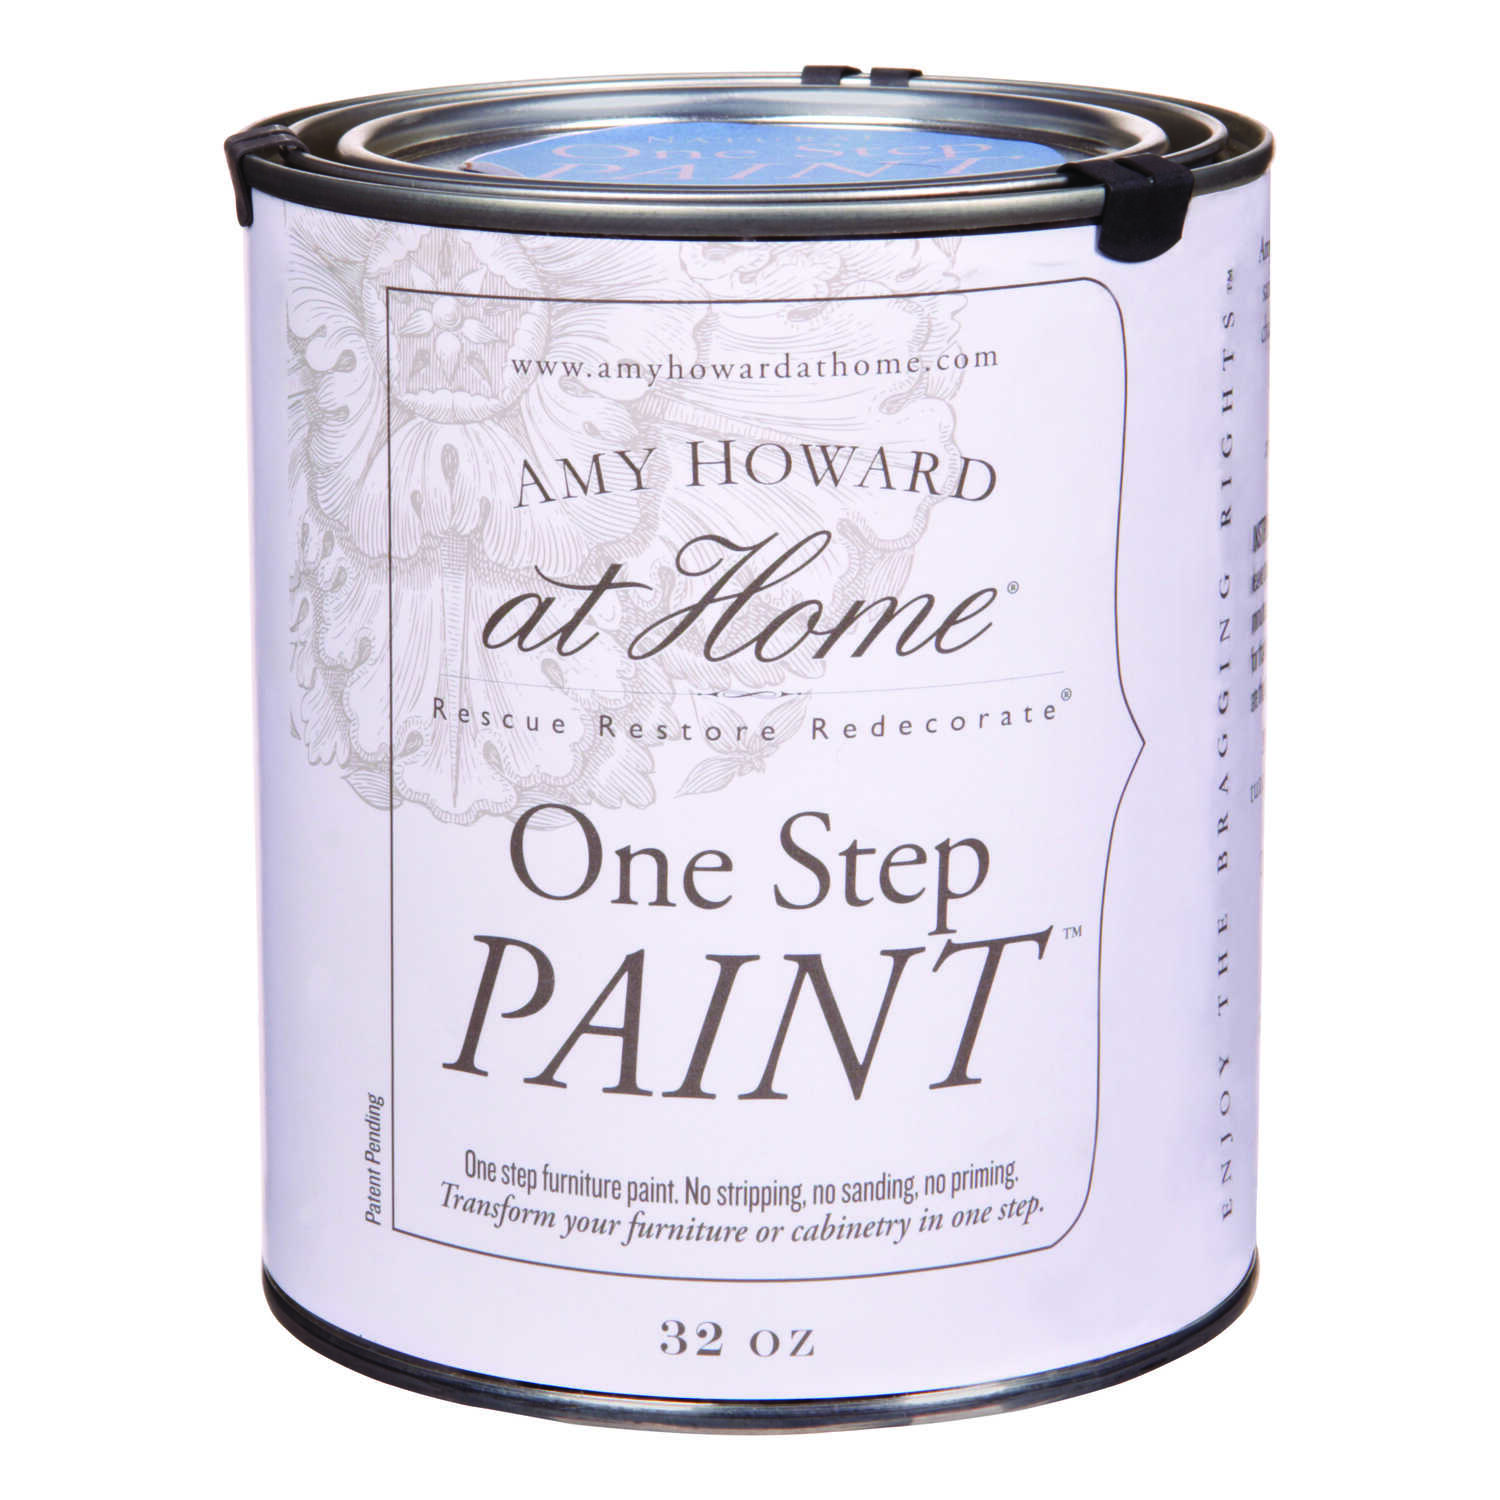 Amy Howard at Home  Amercian Dream  Flat Chalky Finish  Latex  One Step Paint  32 oz.